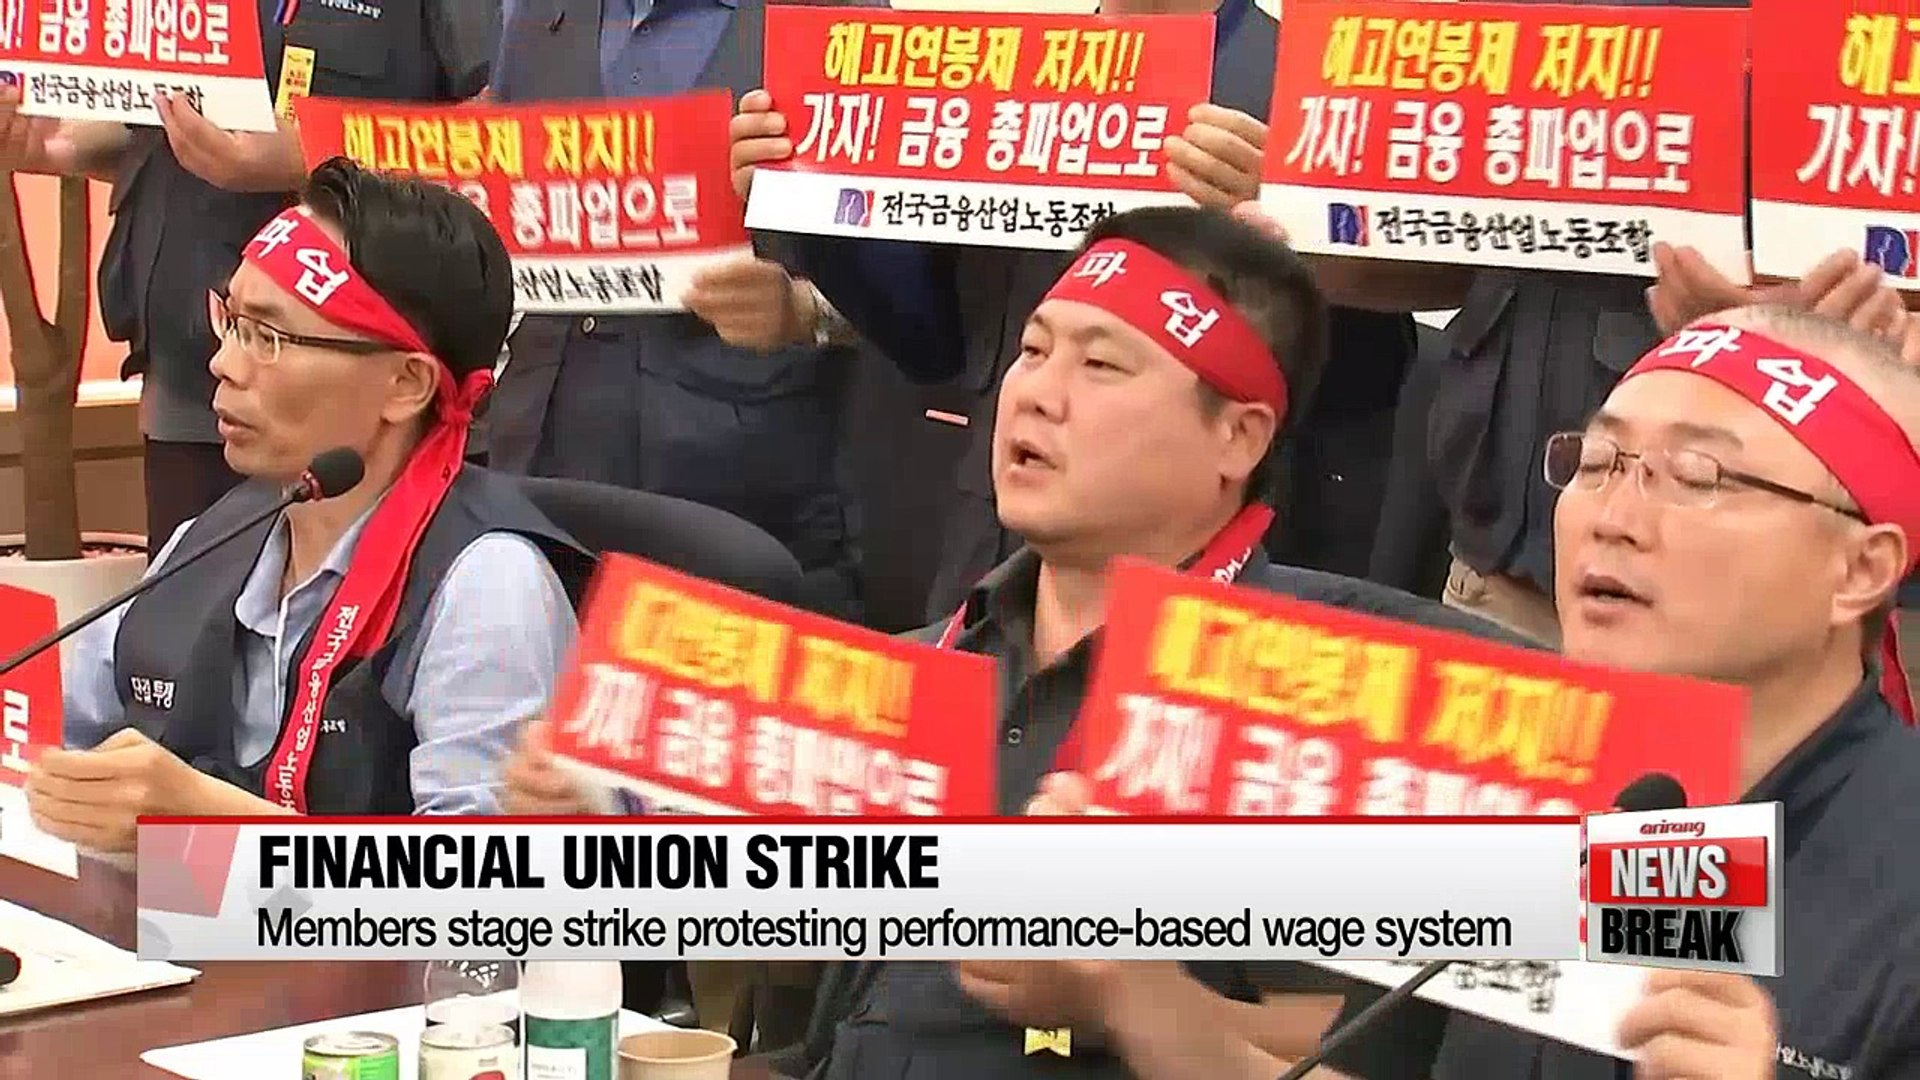 Korea's financial union stages strike protesting performance-based wage system